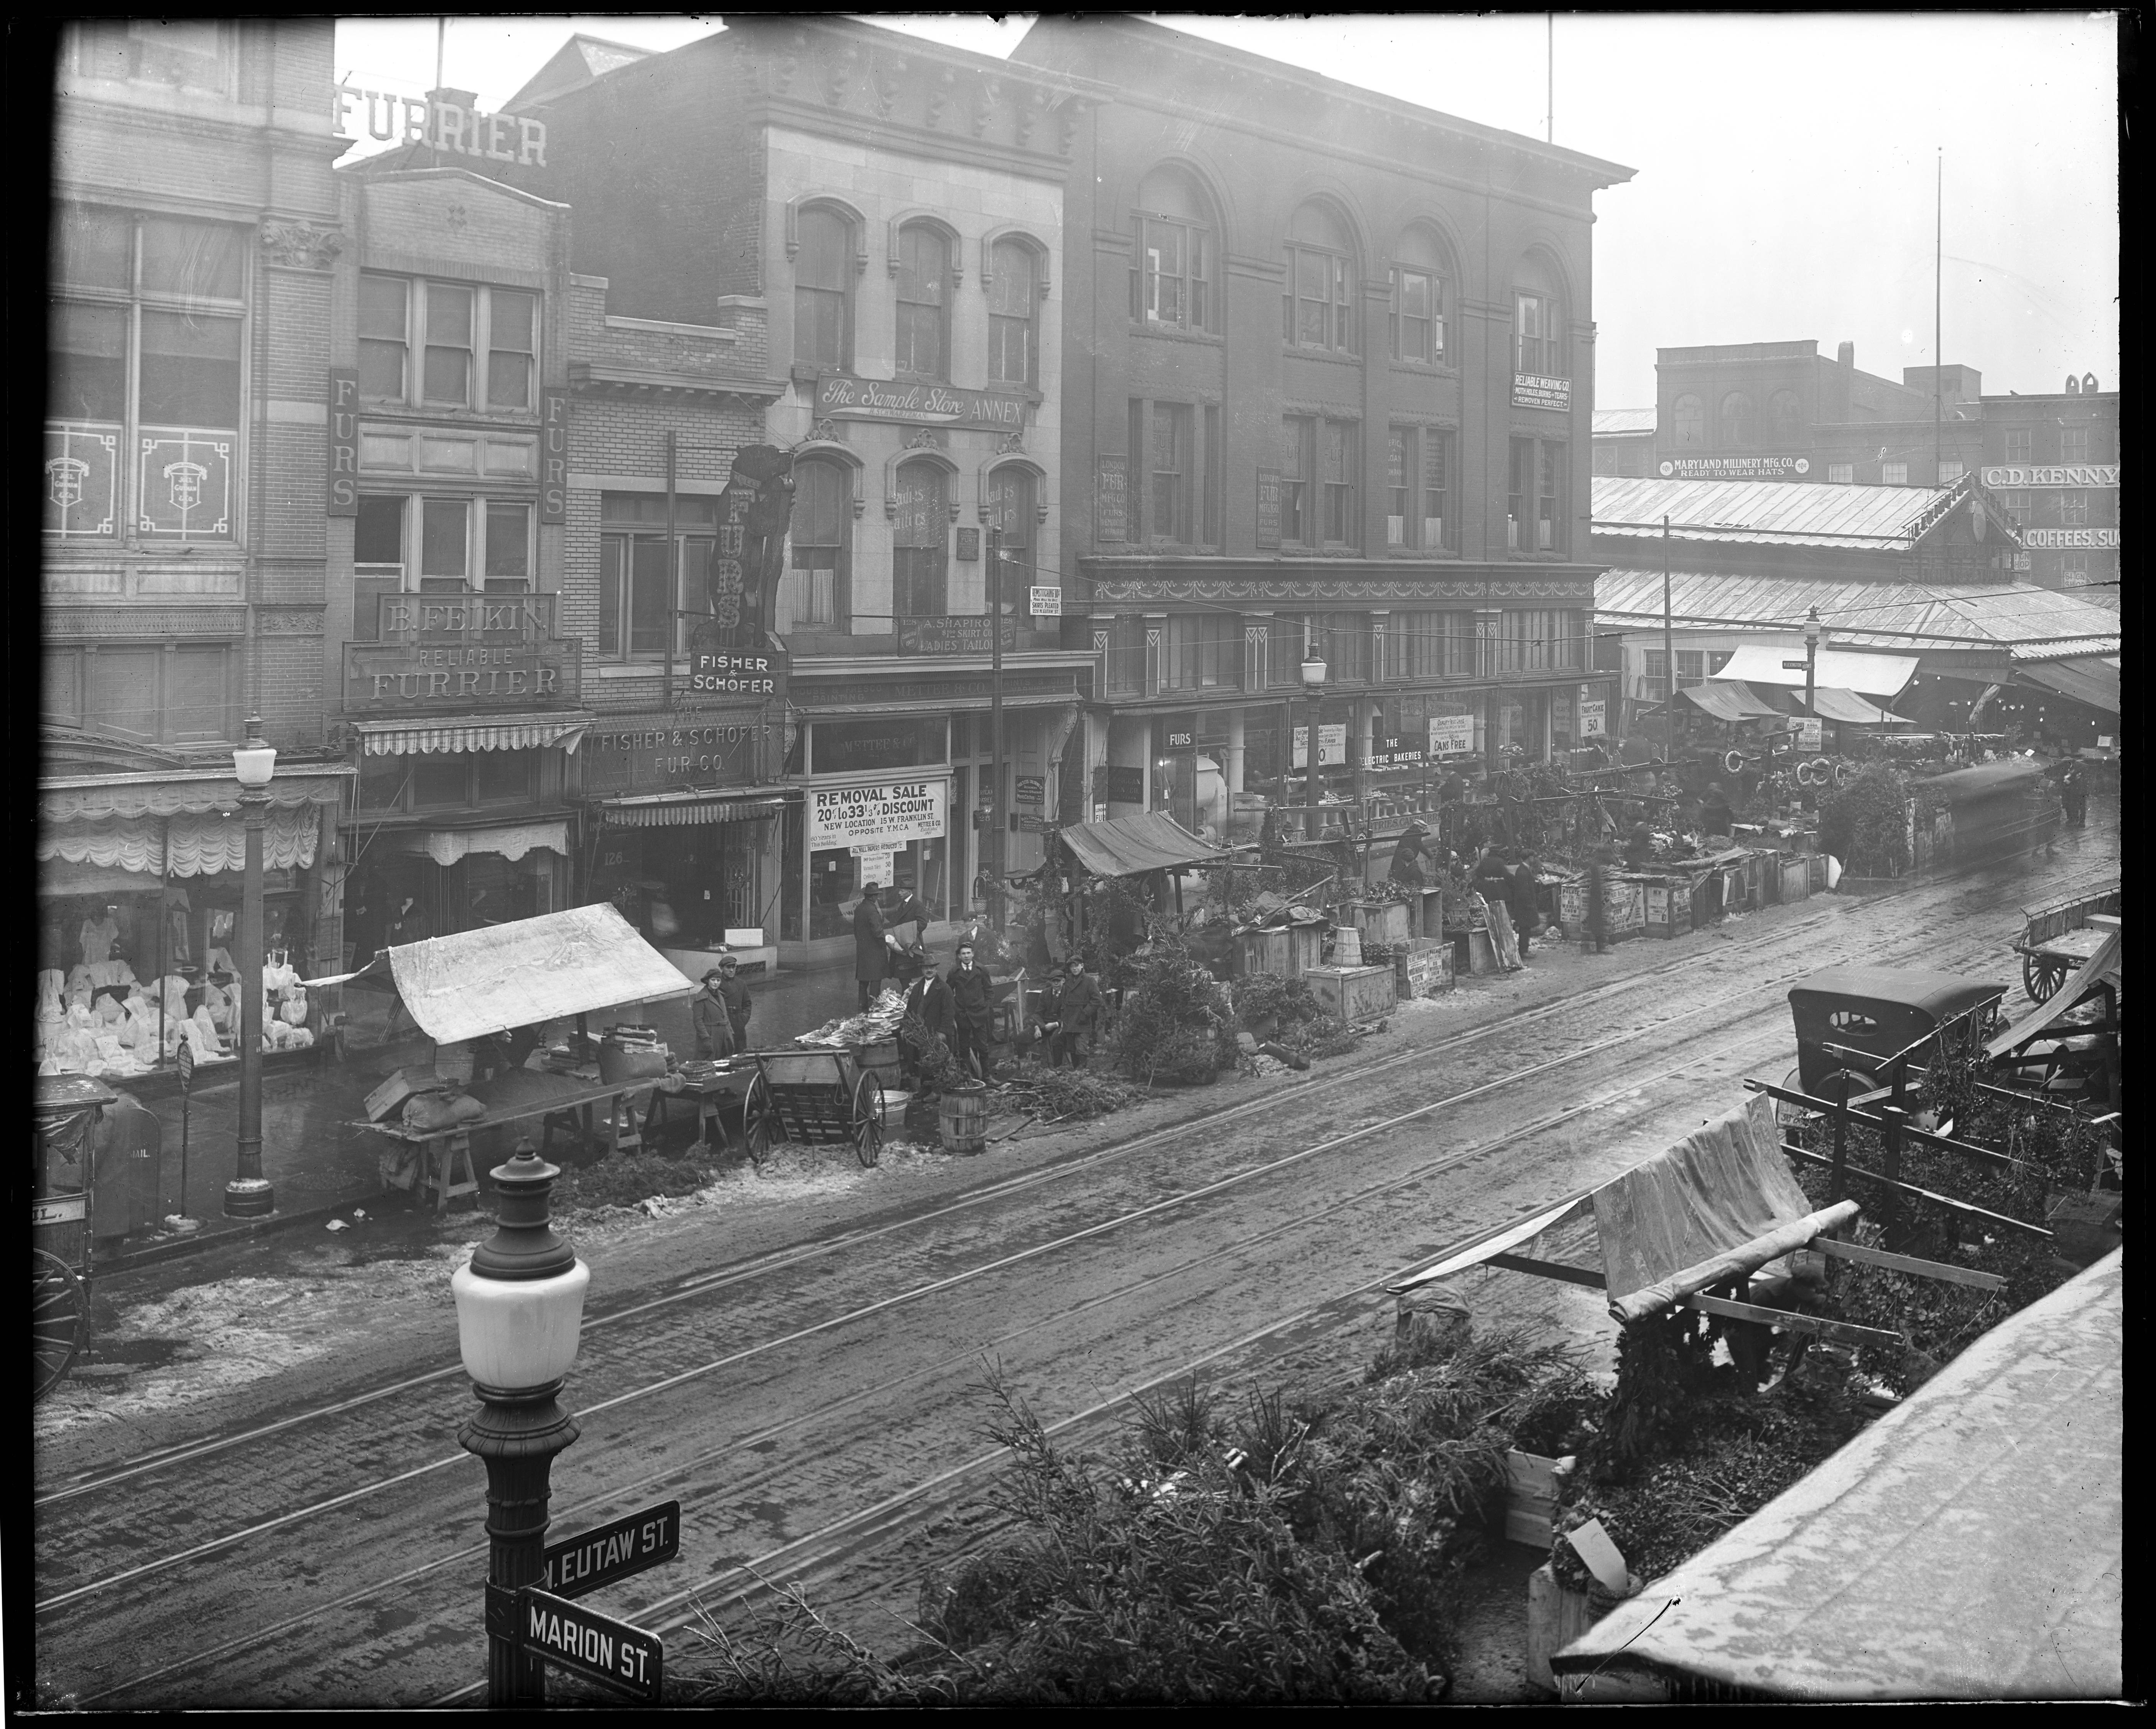 Outdoor Stalls on Eutaw in 1920s